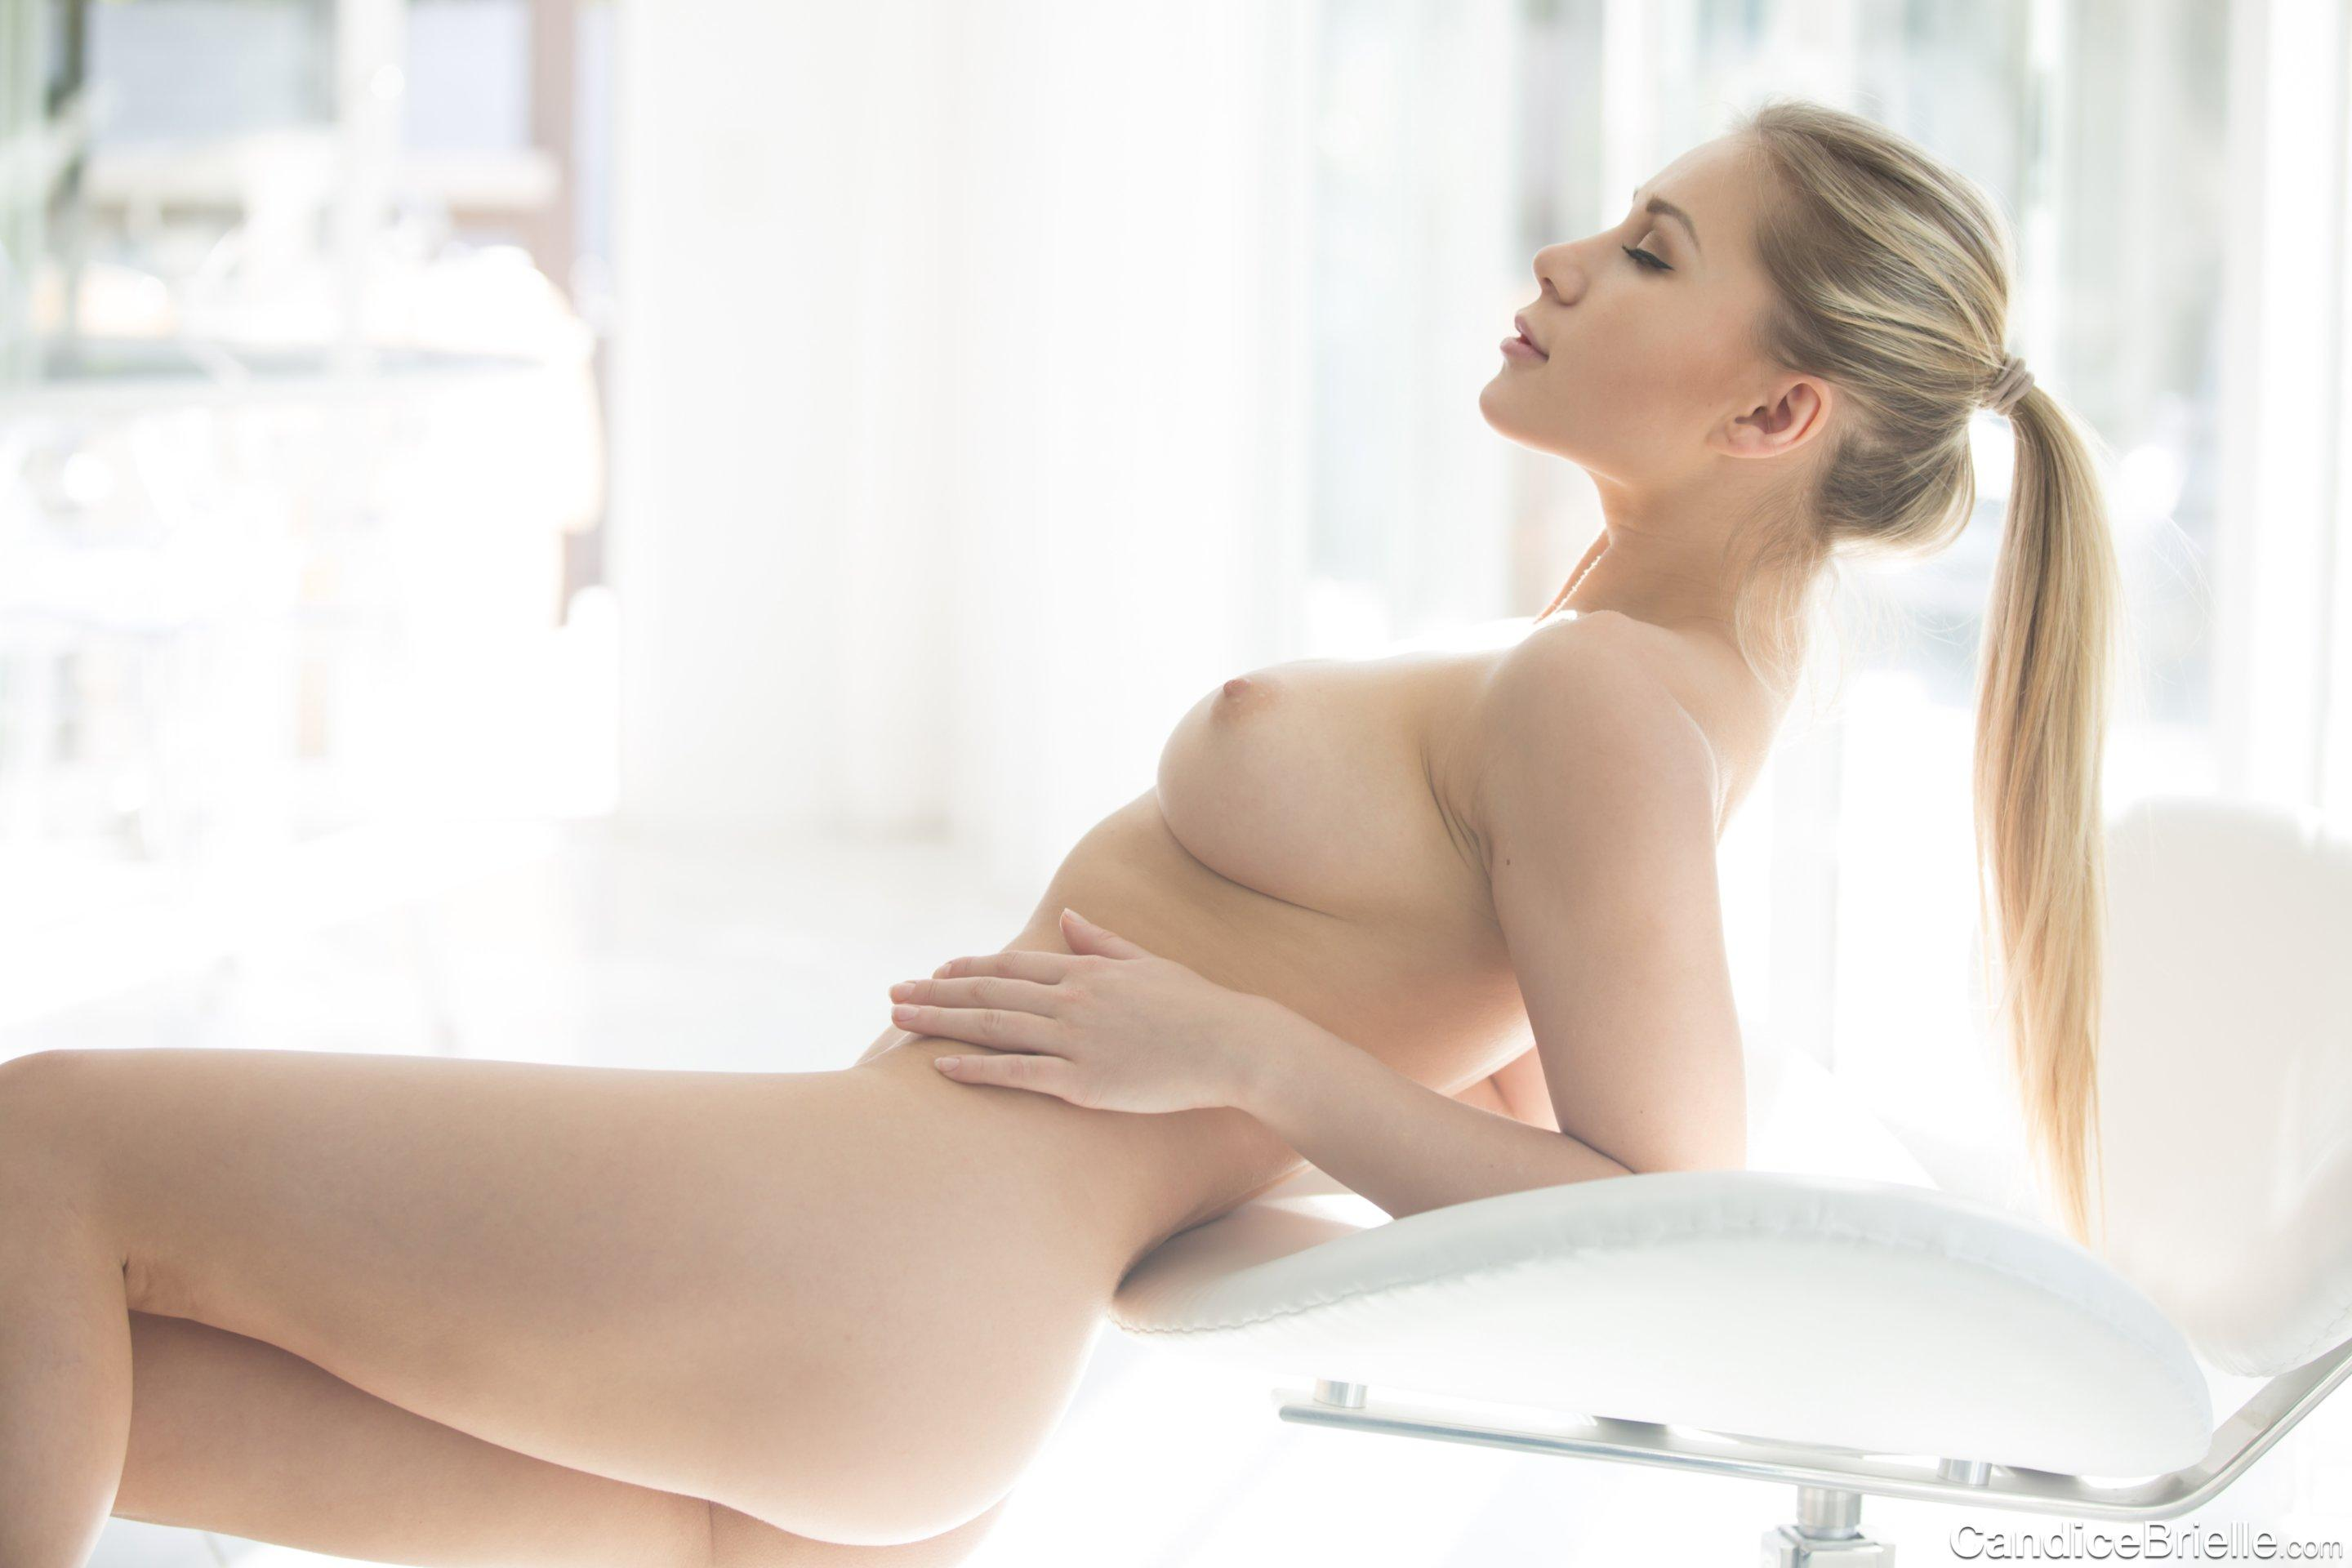 Hot beauties do some amazing anal